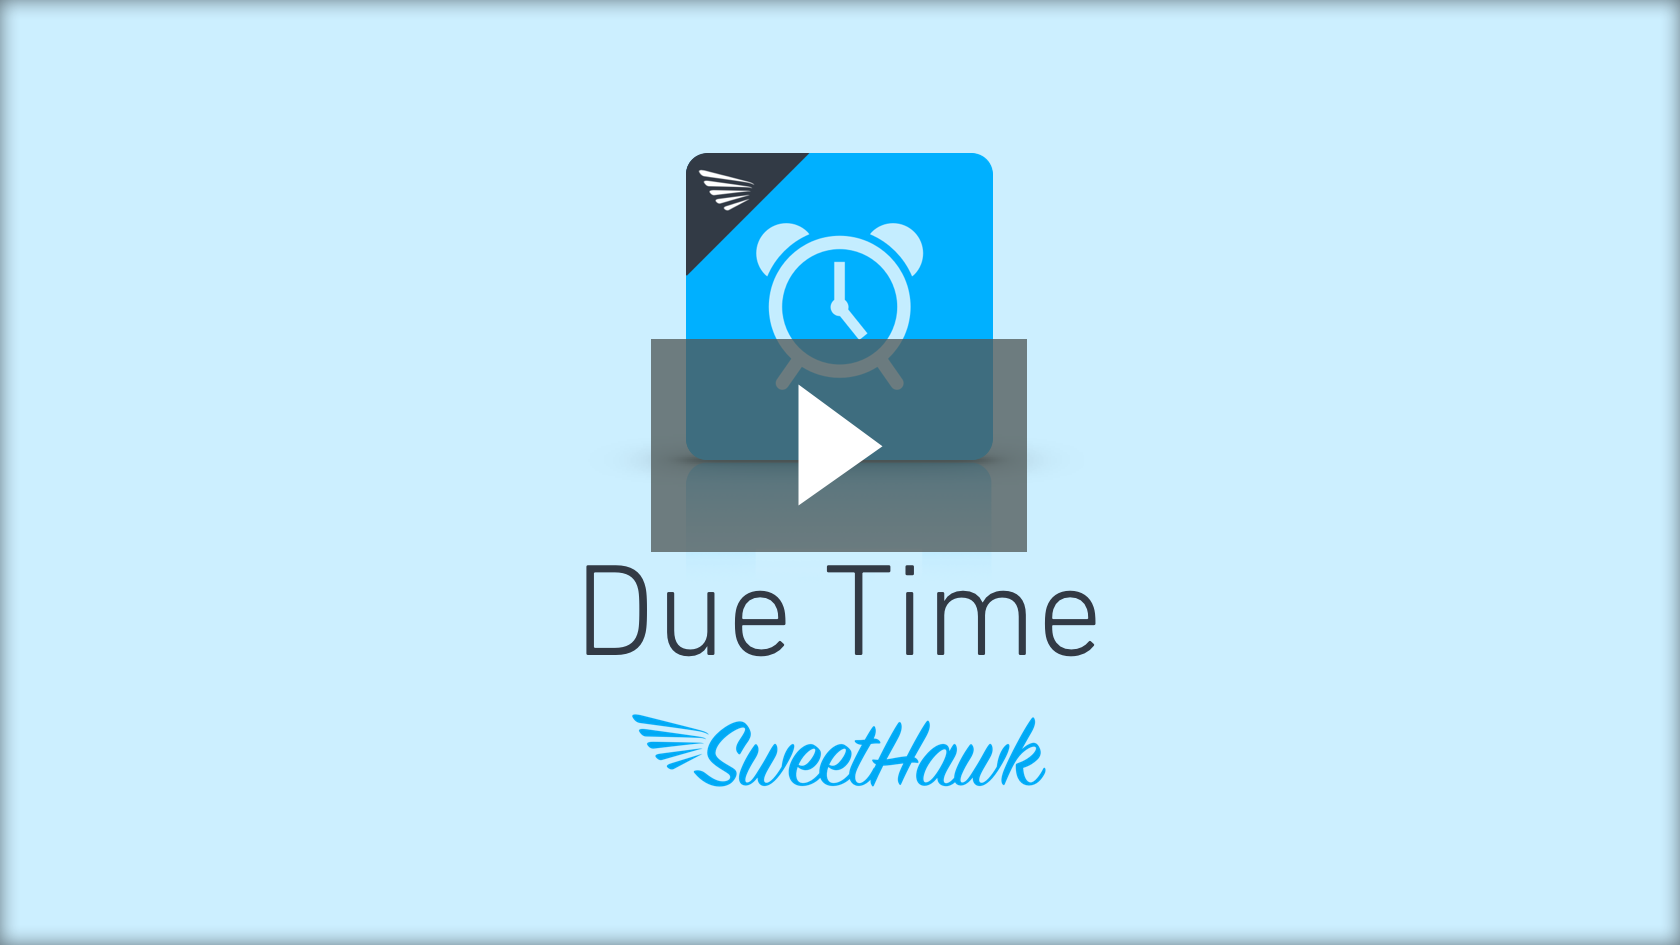 Watch the Due Time app video